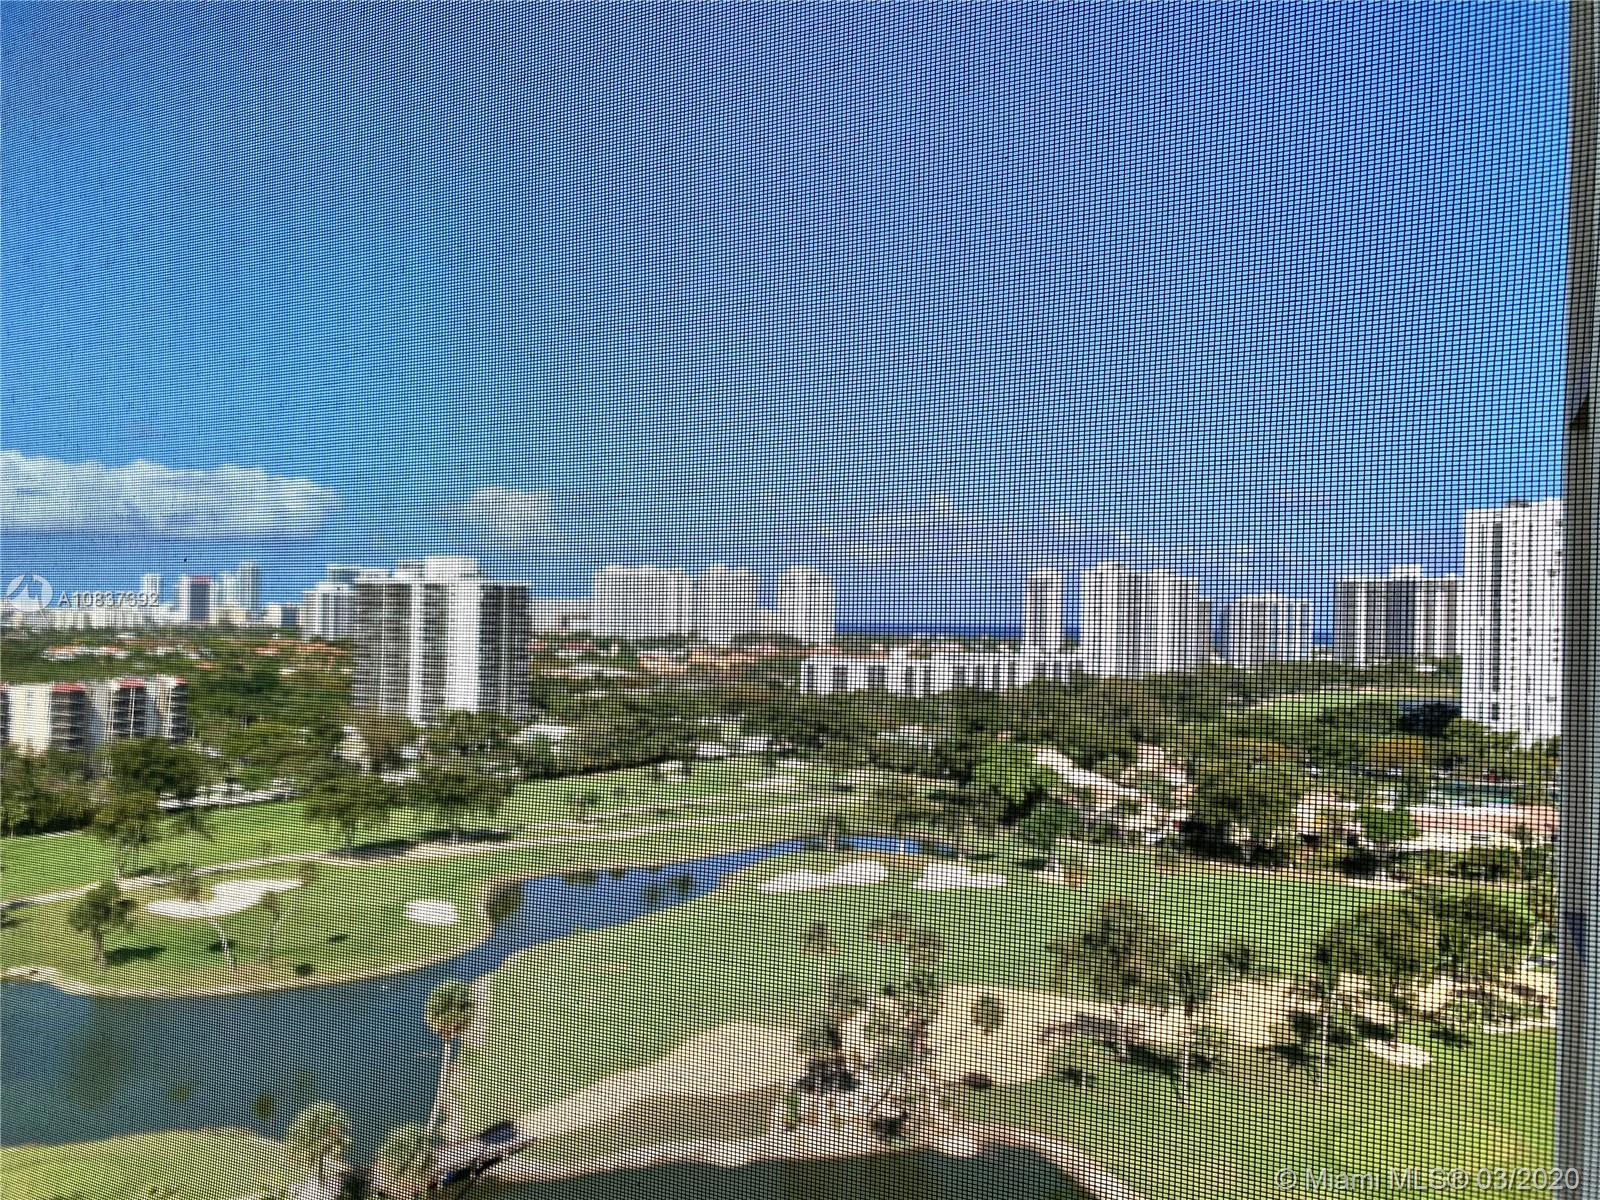 SPECTACULAR  GOLF COURSE, CITY AND OCEAN VIEWS! SPACIOUS 1 BEDROOM 1 & 1/2 BATHROOMS. READY TO SELL